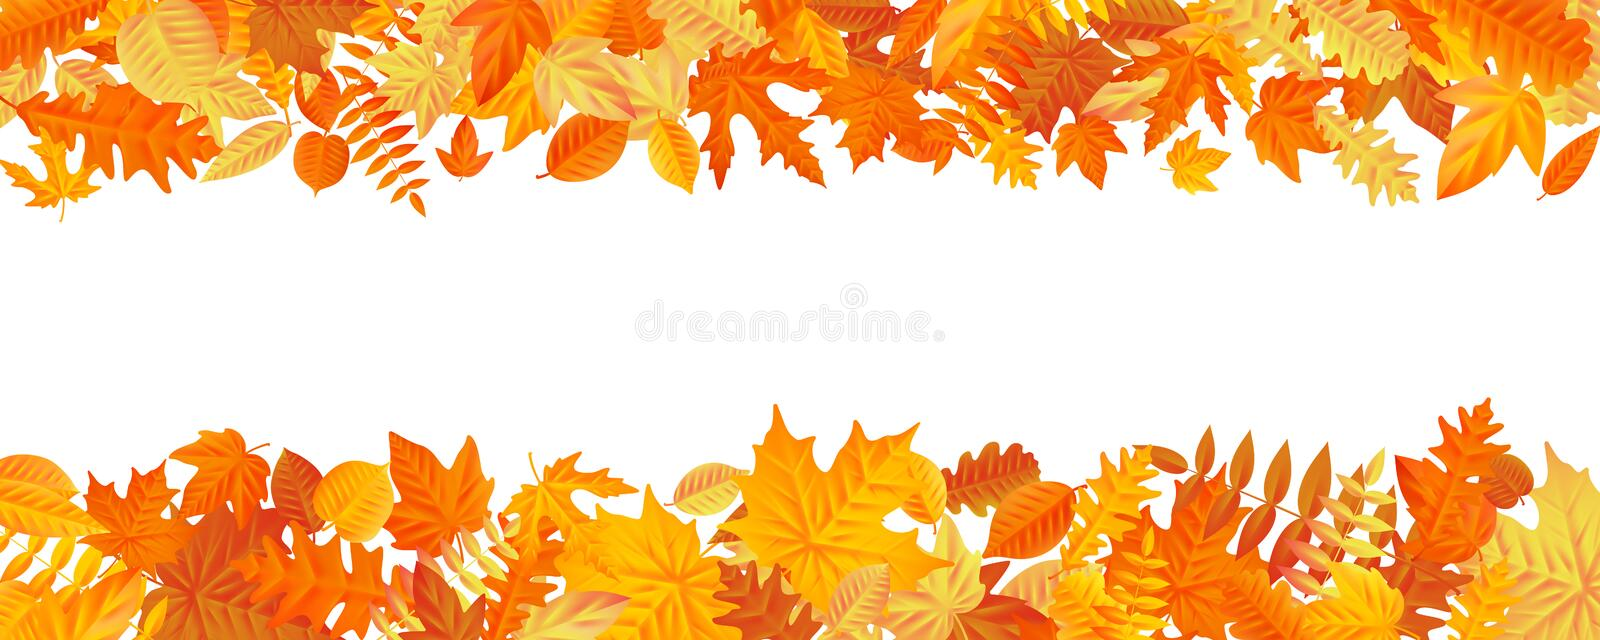 Frame with fall autumn colorful leaves on white background. Eps 10 royalty free illustration